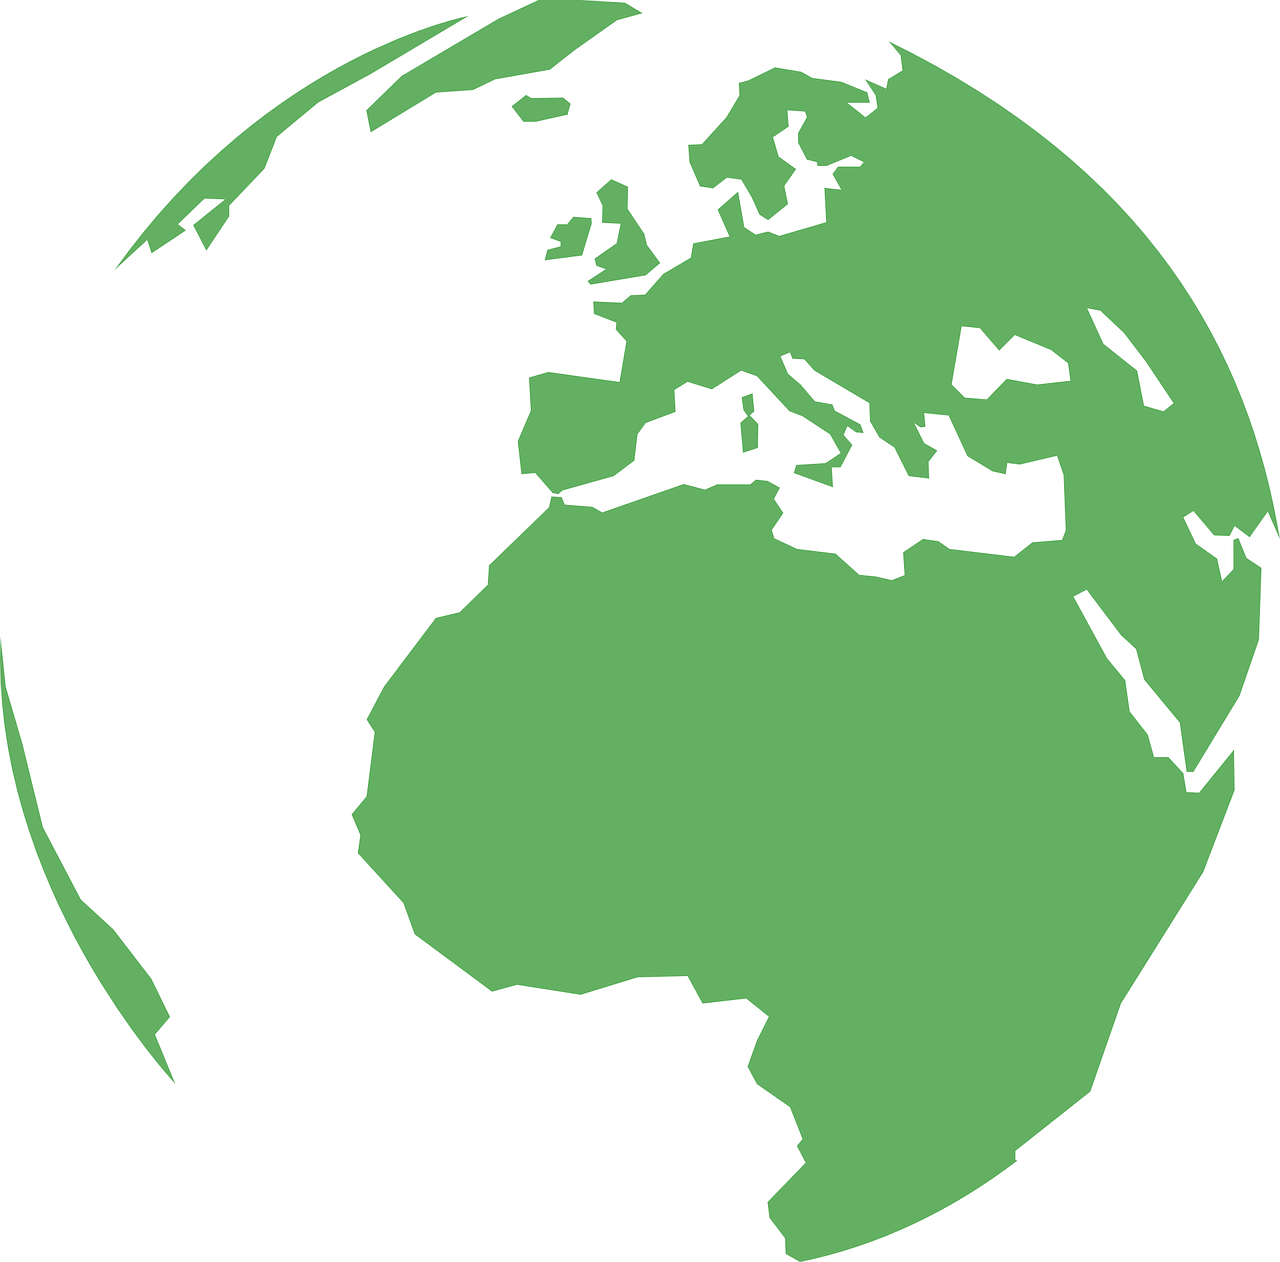 Earth planet world png. Globe clipart subject